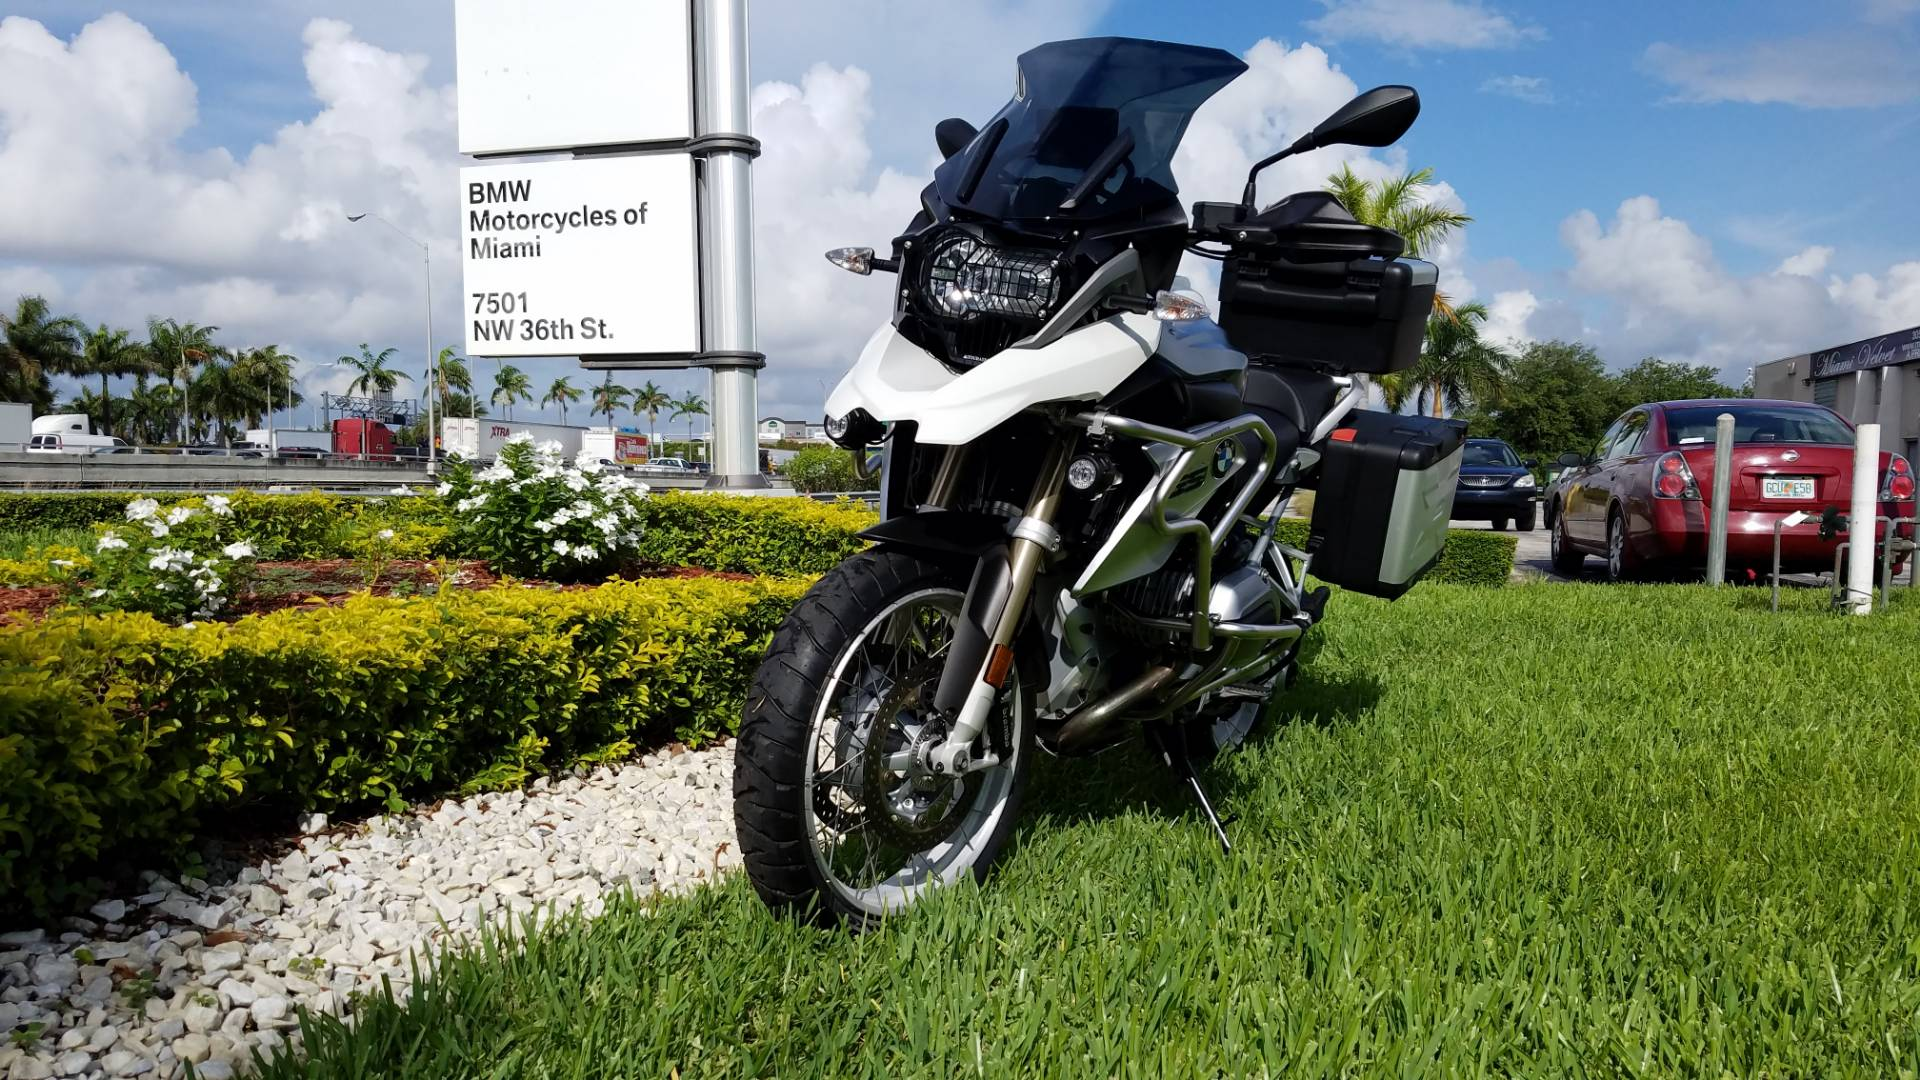 Used 2013 BMW R 1200 GS For Sale, White R 1200 GS For Sale, BMW Motorcycle R 1200 GS, pre-owned BMW Motorcycle, BMW R1200GS, R1200GS